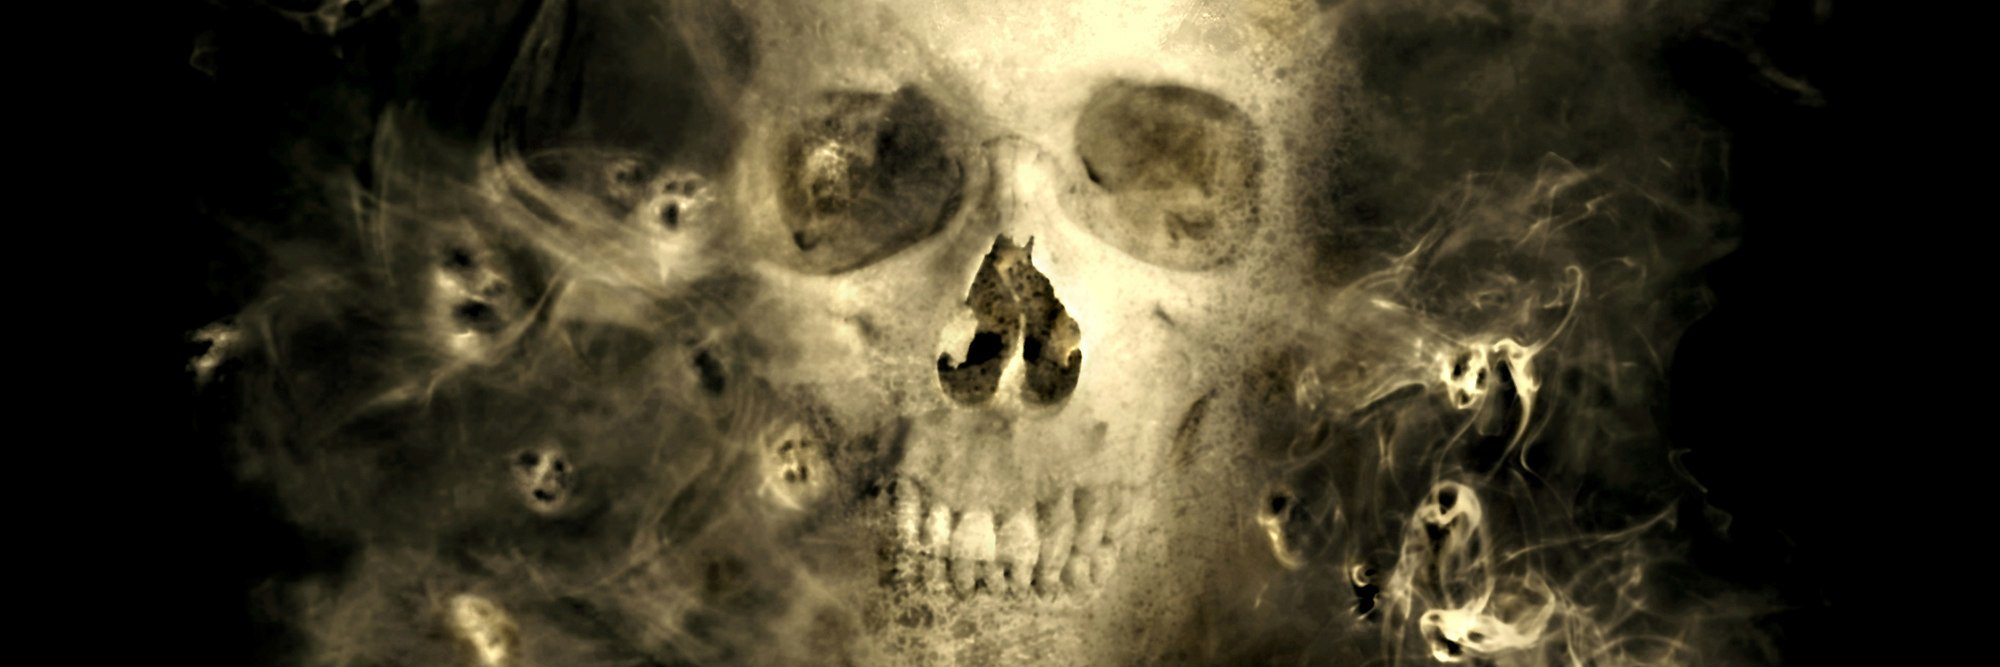 eerie skull with smoky demons